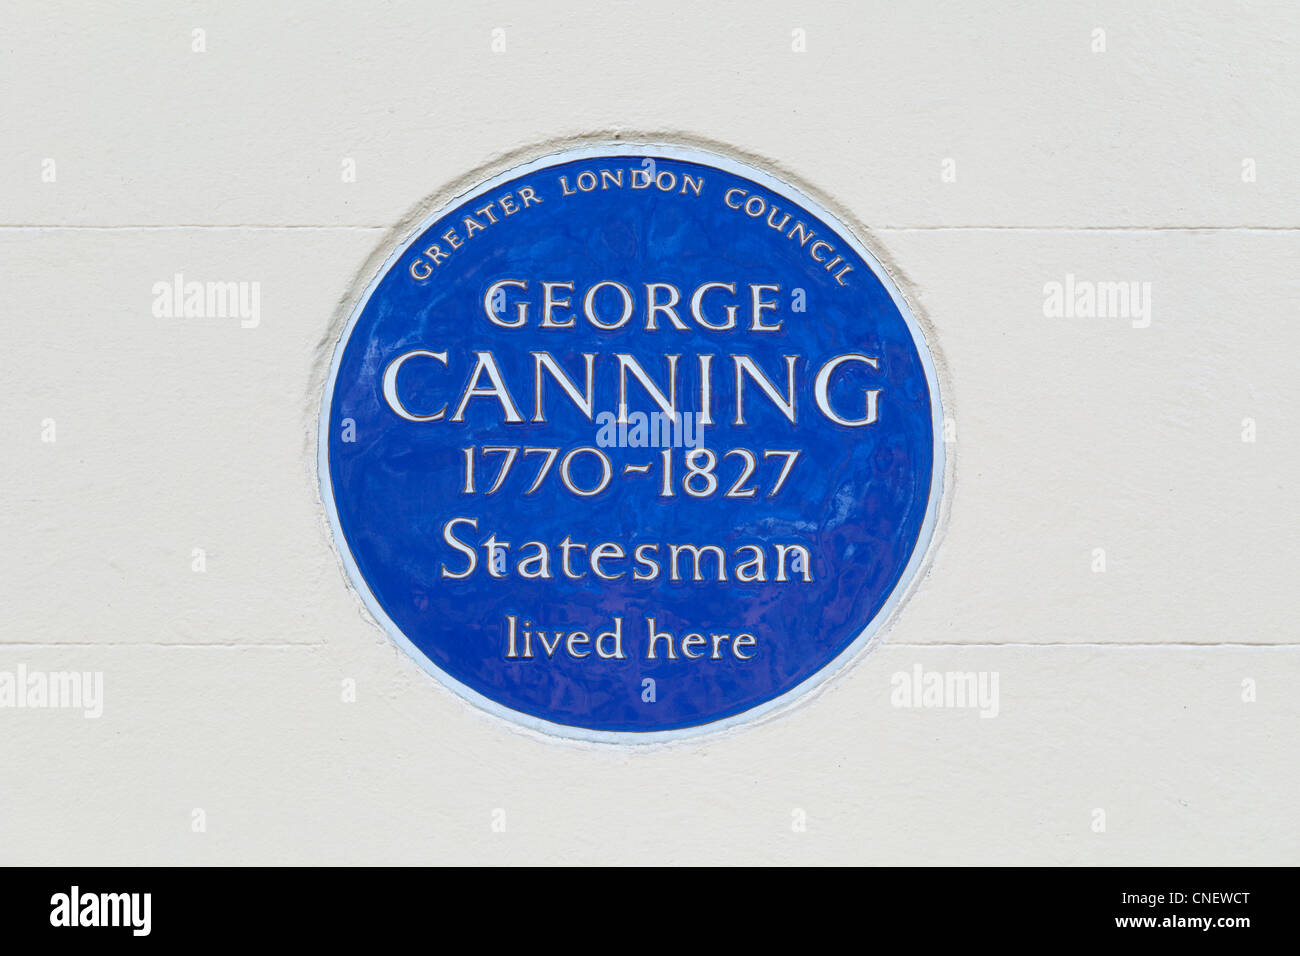 Blue plaque commemorating George Canning, London, England - Stock Image